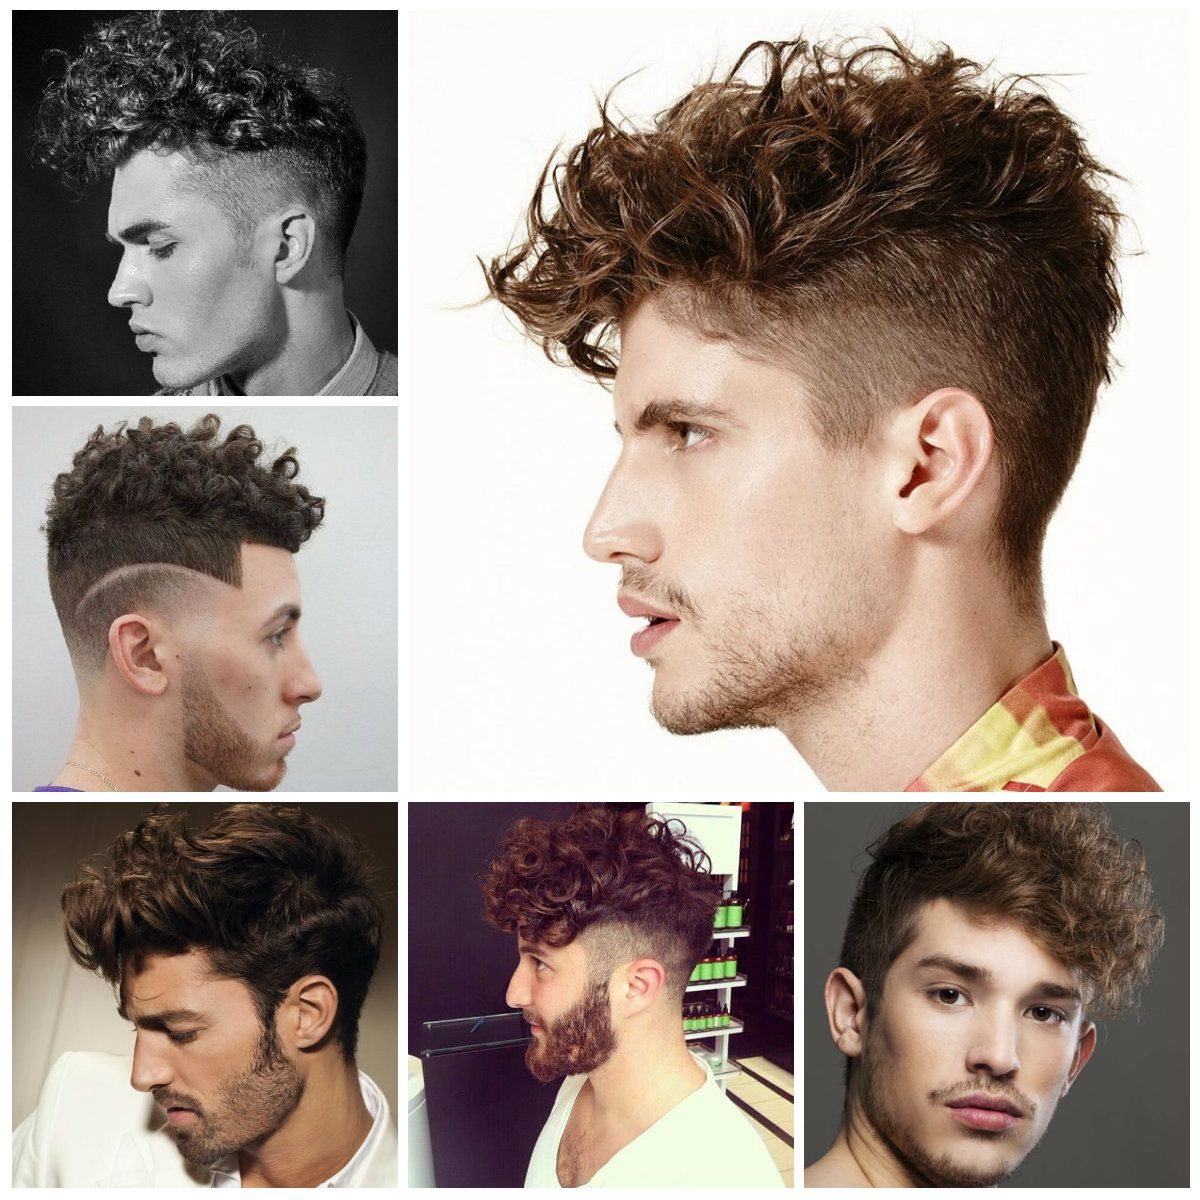 Cool Curly Undercut Hairstyles For Men 2017   N Hair In 2018 Intended For Undercut Hairstyles For Curly Hair (View 5 of 25)